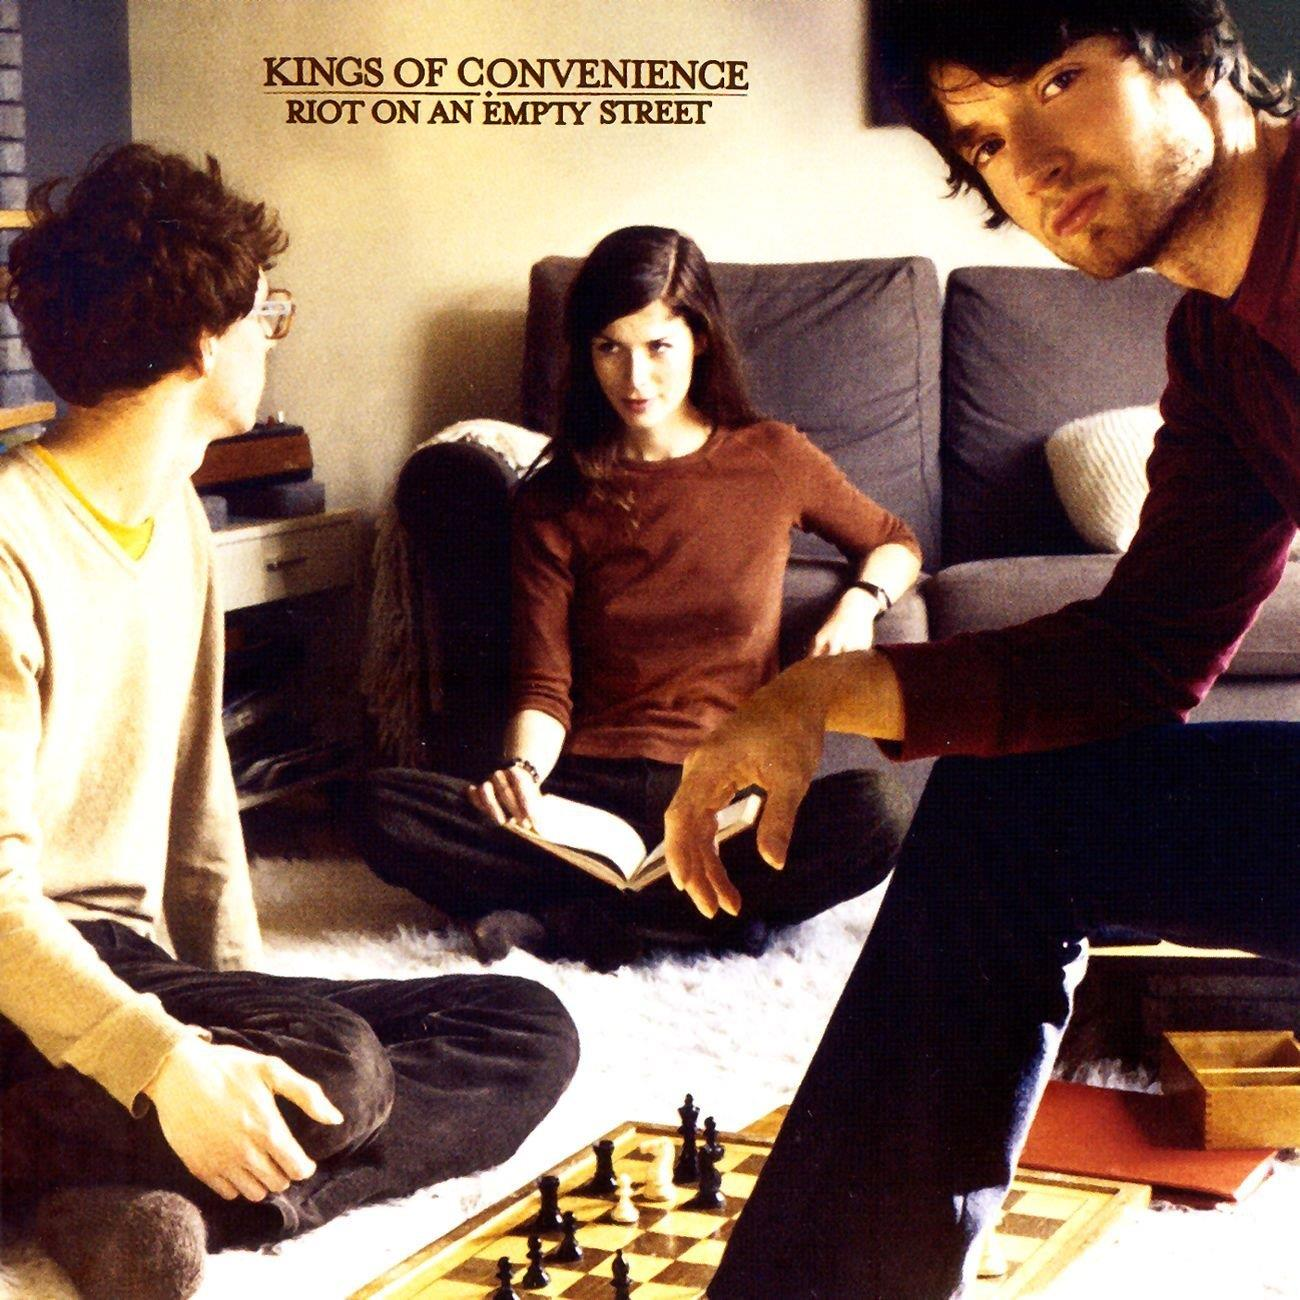 4774642 Universal  Kings of Convenience Riot On An Empty Street (LP)